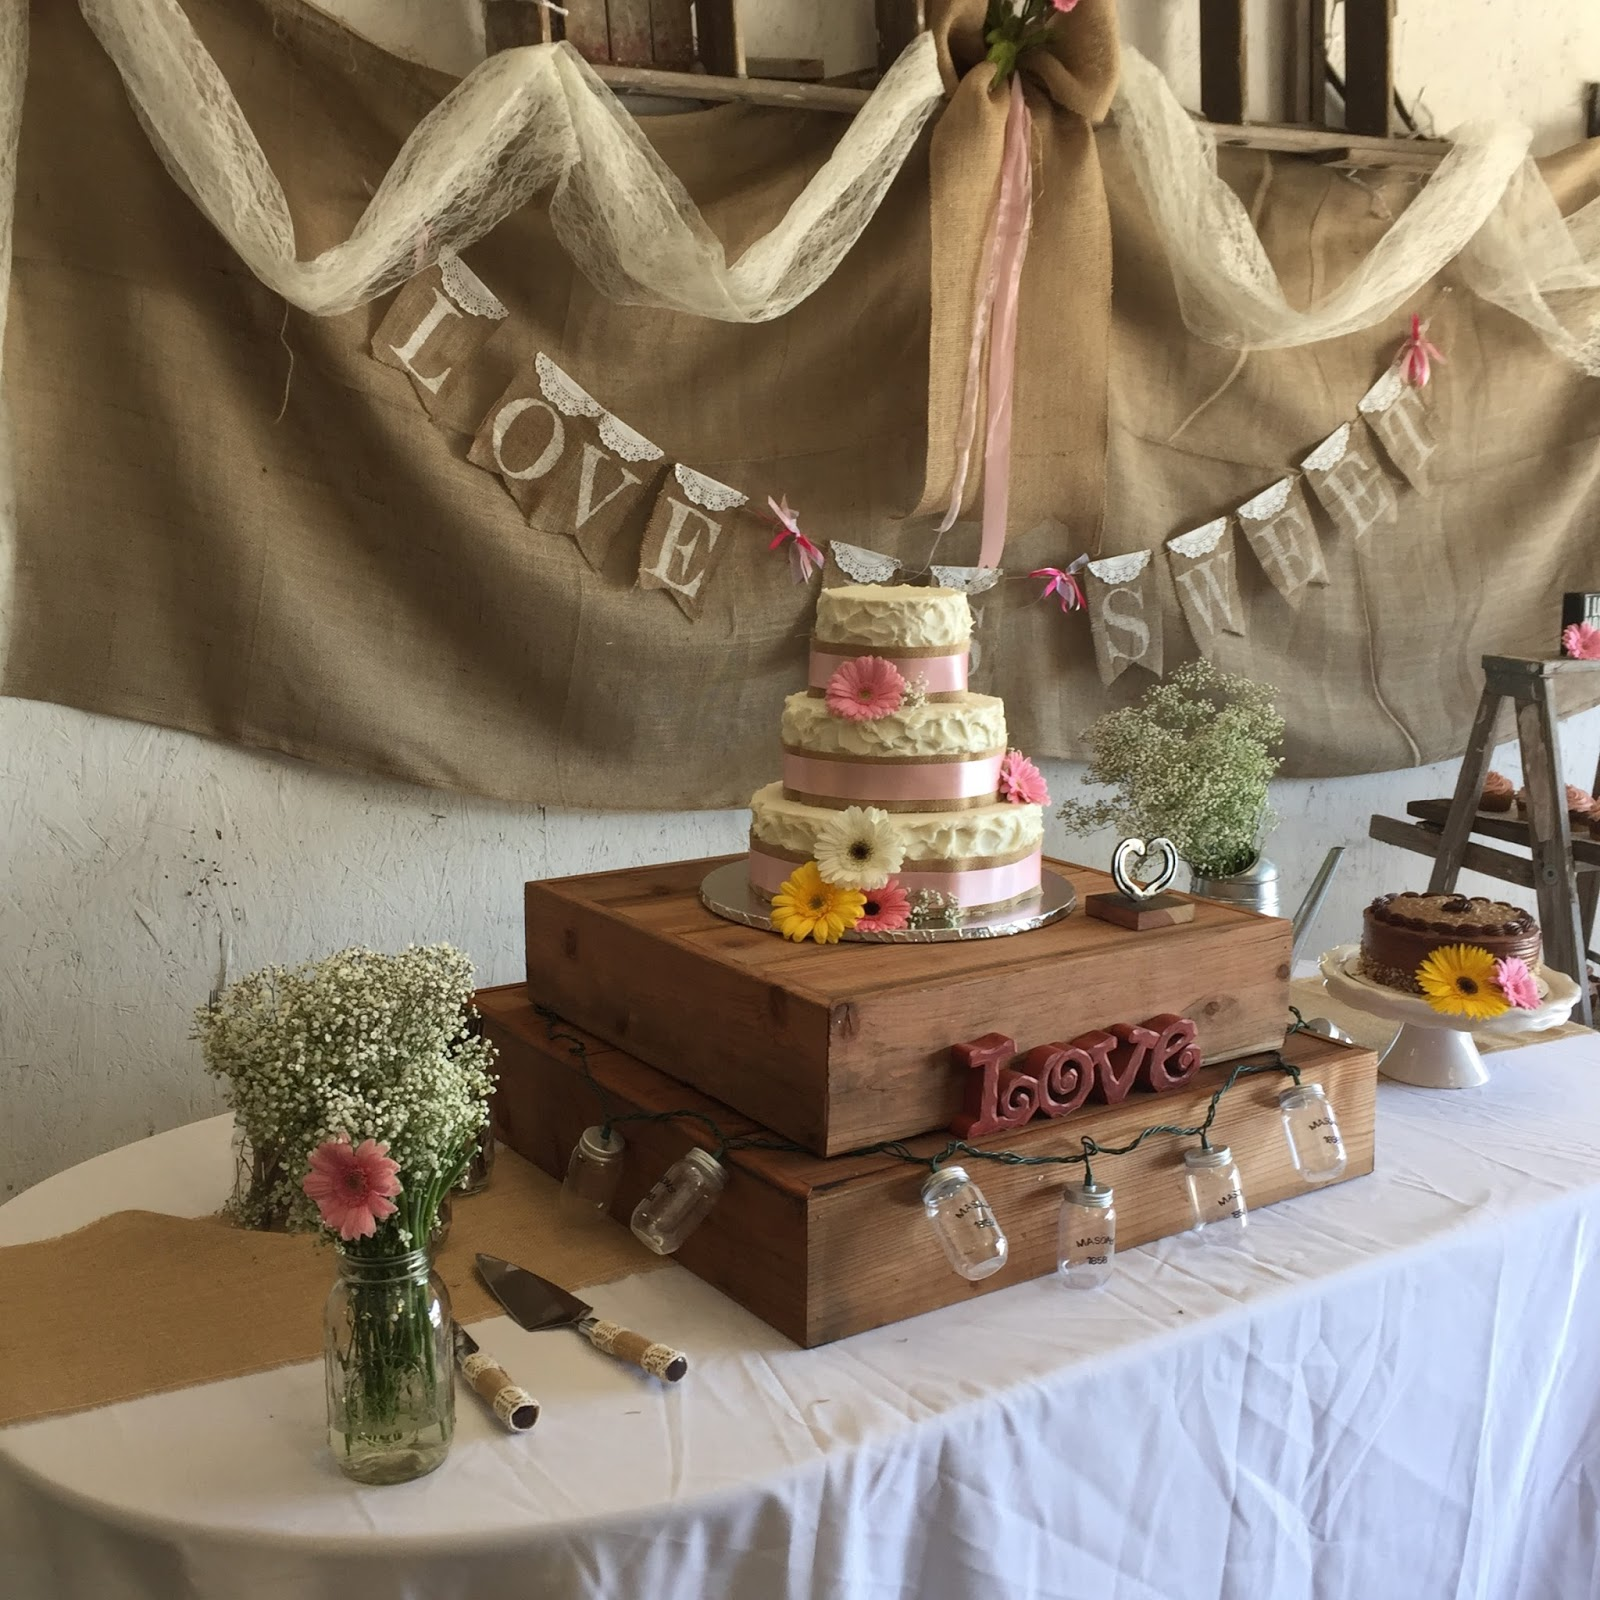 The Grooms Cake Was German Chocolate His Favorite Why Dessert Row Well I Also Made Neapolitan Cupcakes Pink Lemonade Pops And Dipped